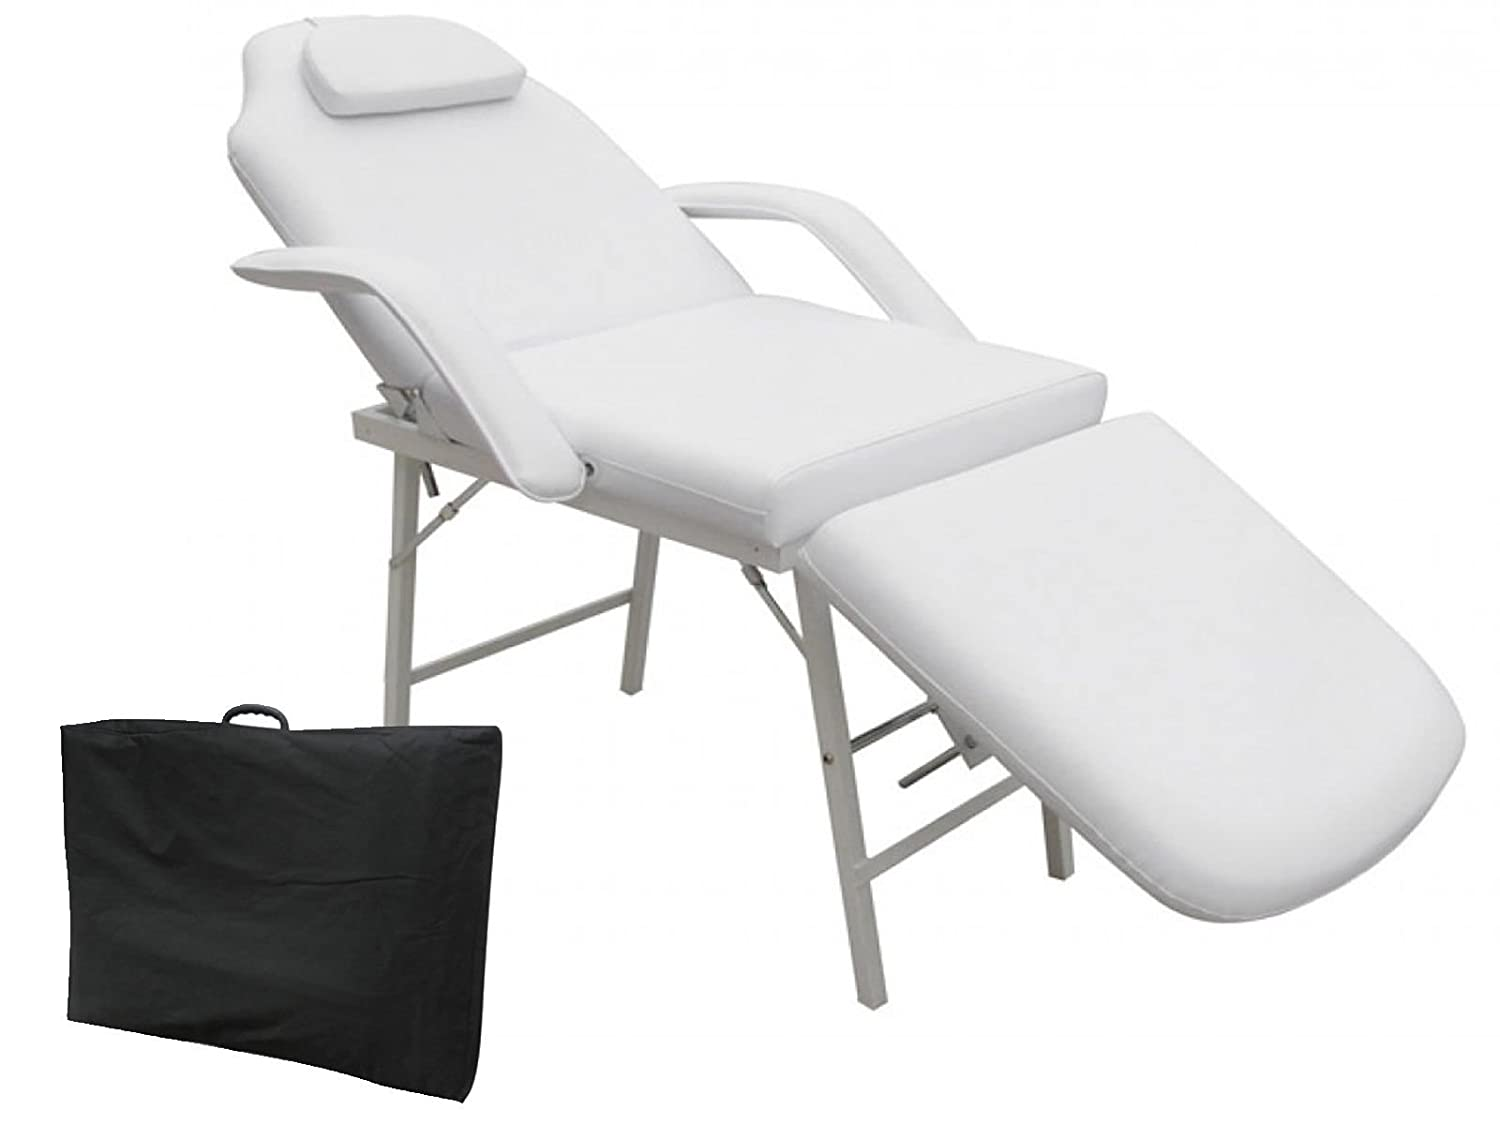 Amazon.com 73  Portable Tattoo Parlor Spa Salon Facial Bed Beauty Massage Table Chair White + FREE E-Book Kitchen u0026 Dining  sc 1 st  Amazon.com : portable reclining chairs - islam-shia.org